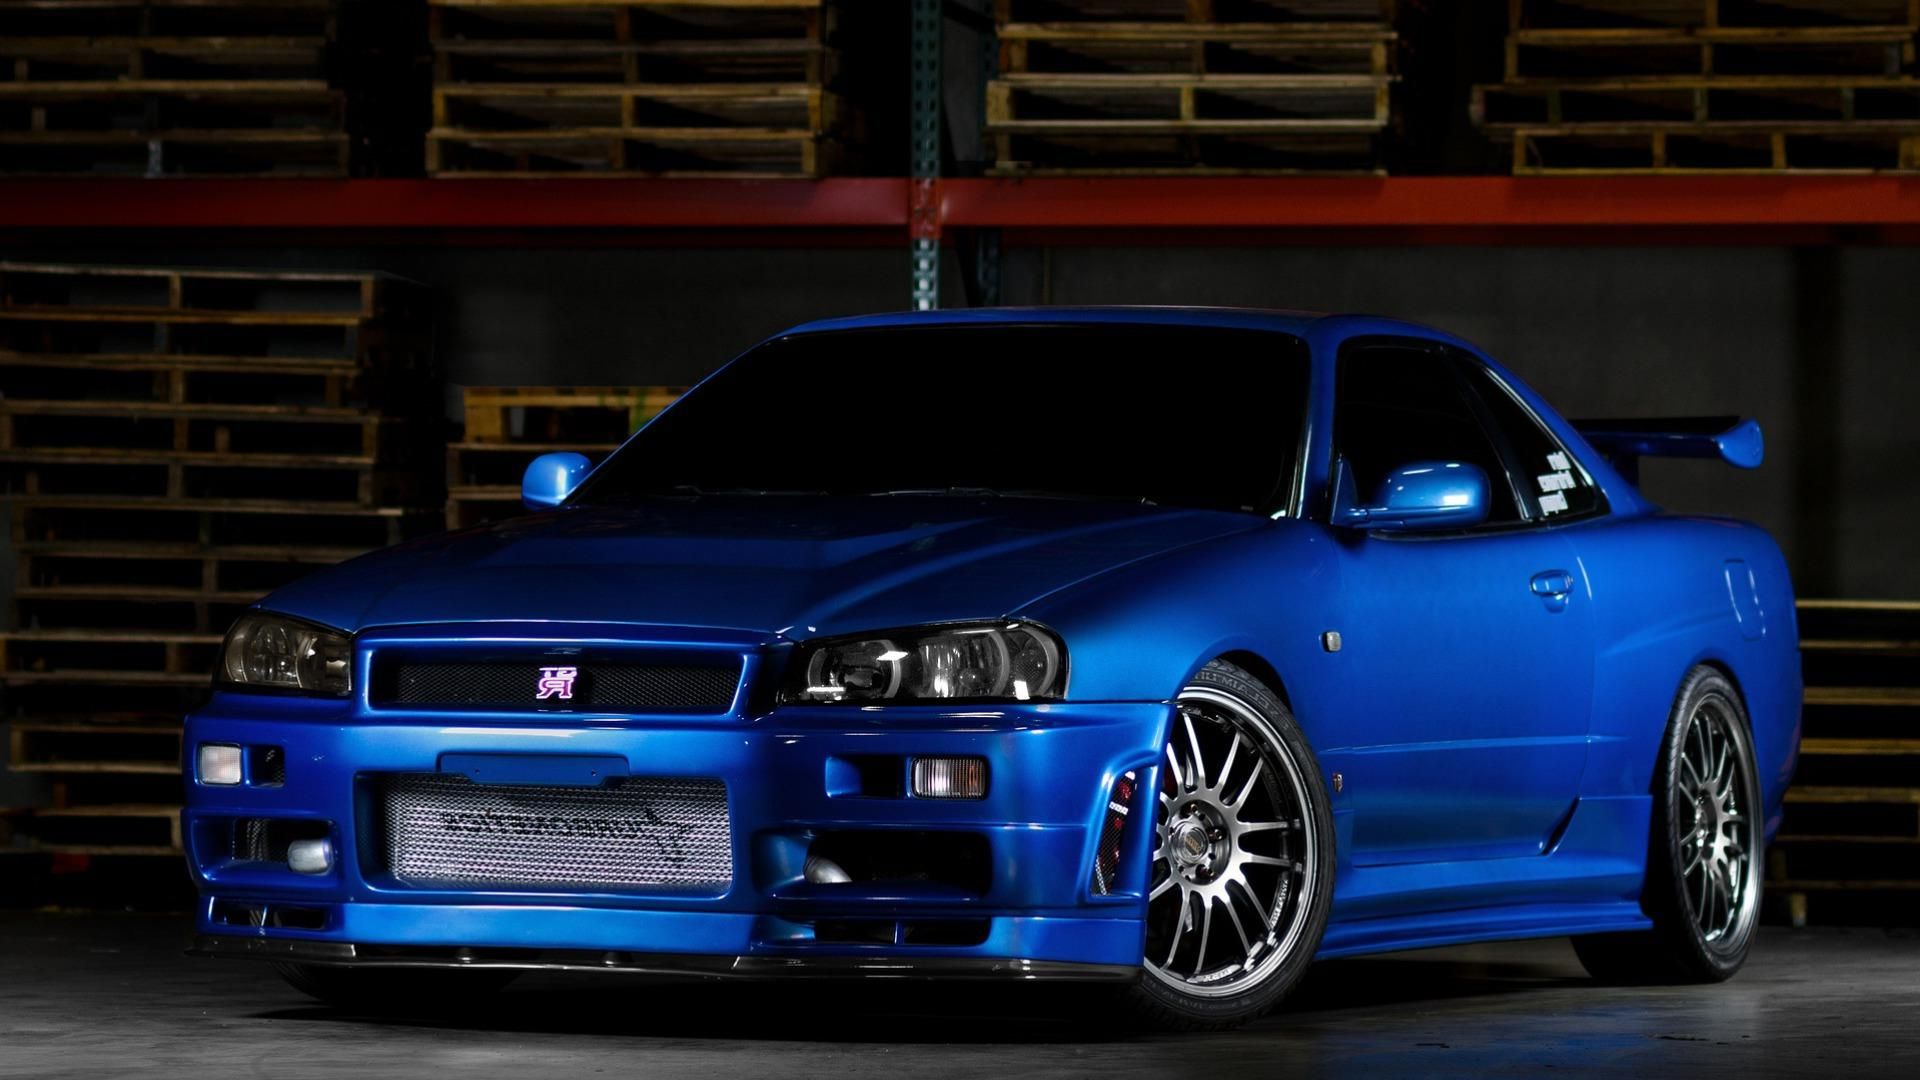 nissan skyline gtr r34 desktop hd wallpapers jdm. Black Bedroom Furniture Sets. Home Design Ideas